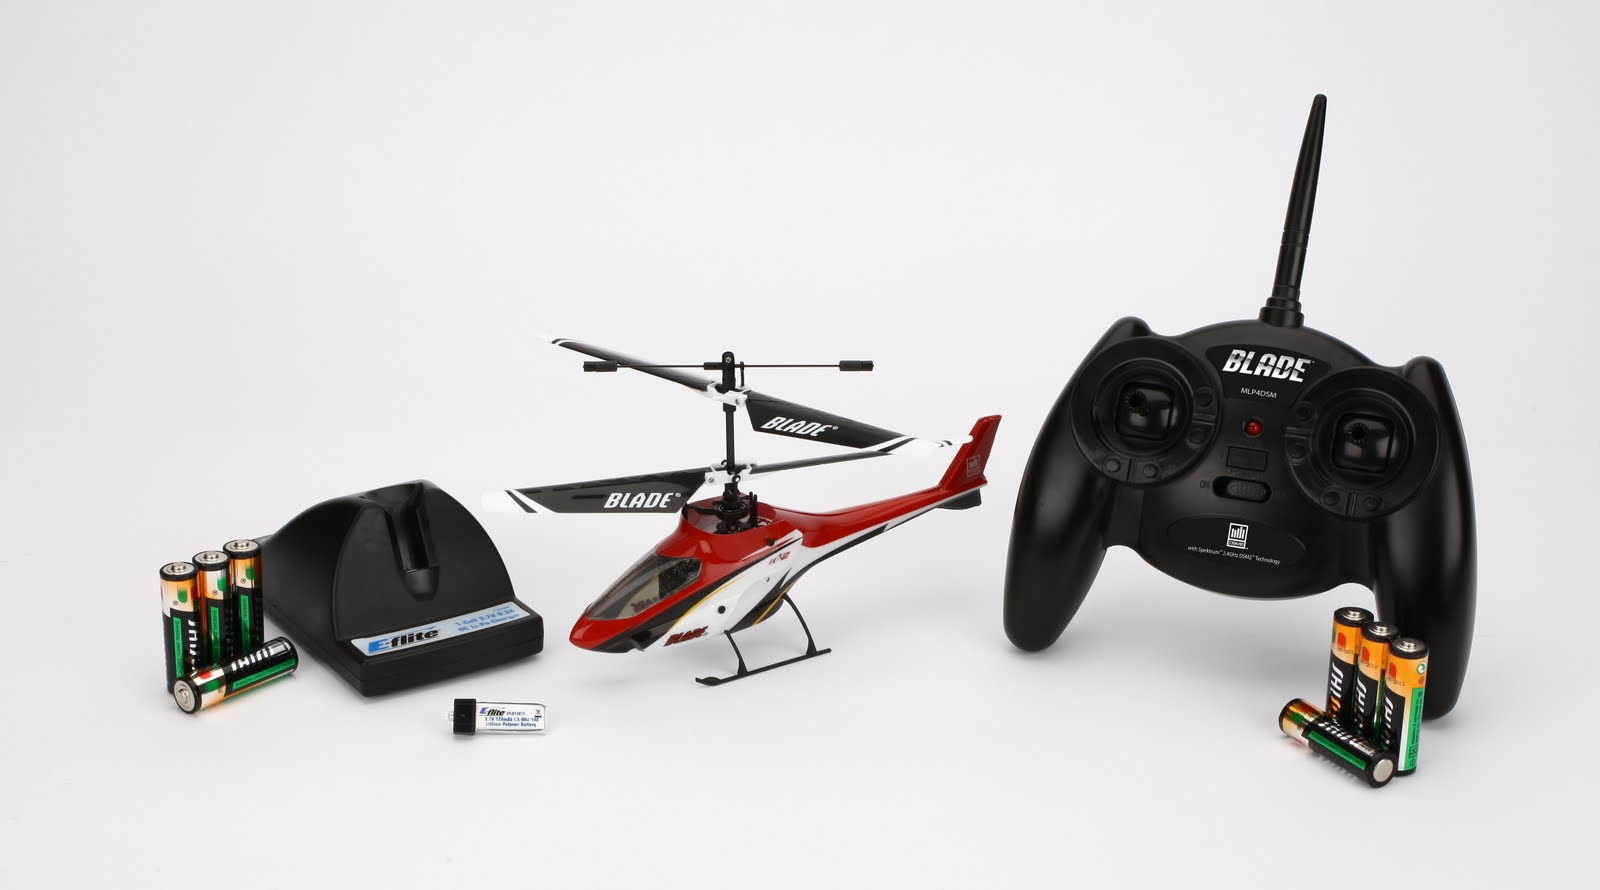 blade 120 sr rtf helicopter with Elicottero Rc Elettrico Eflite Blade Mcx 2 Rtf 2 4ghz Eflh2400 Modellismo on Allnewge45rc further Eflite Blade 120 SR RTF BLH3100 together with Blade 120 Rtf P 26048 additionally Flite Blade SR 120 Electric RC Helicopter Parts Single Rotor LiPo likewise Pieces Blade 120 Sr C107 520 257 753.